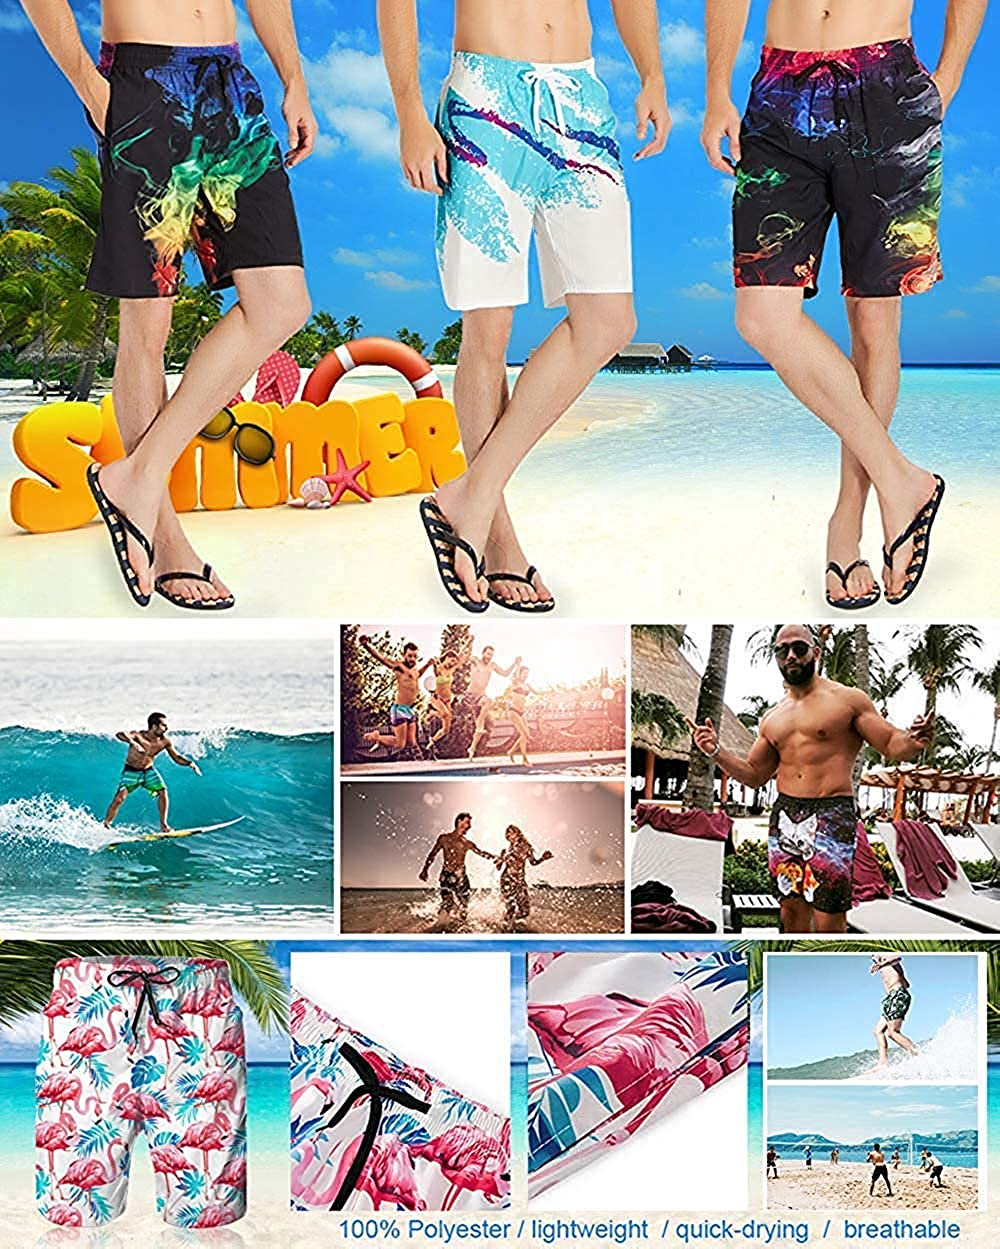 XGUPKL Mens Casual Beachwear Cool Cat with Sunglasses Board Shorts Home Shorts Swim-Trunks with Telescopic Tape